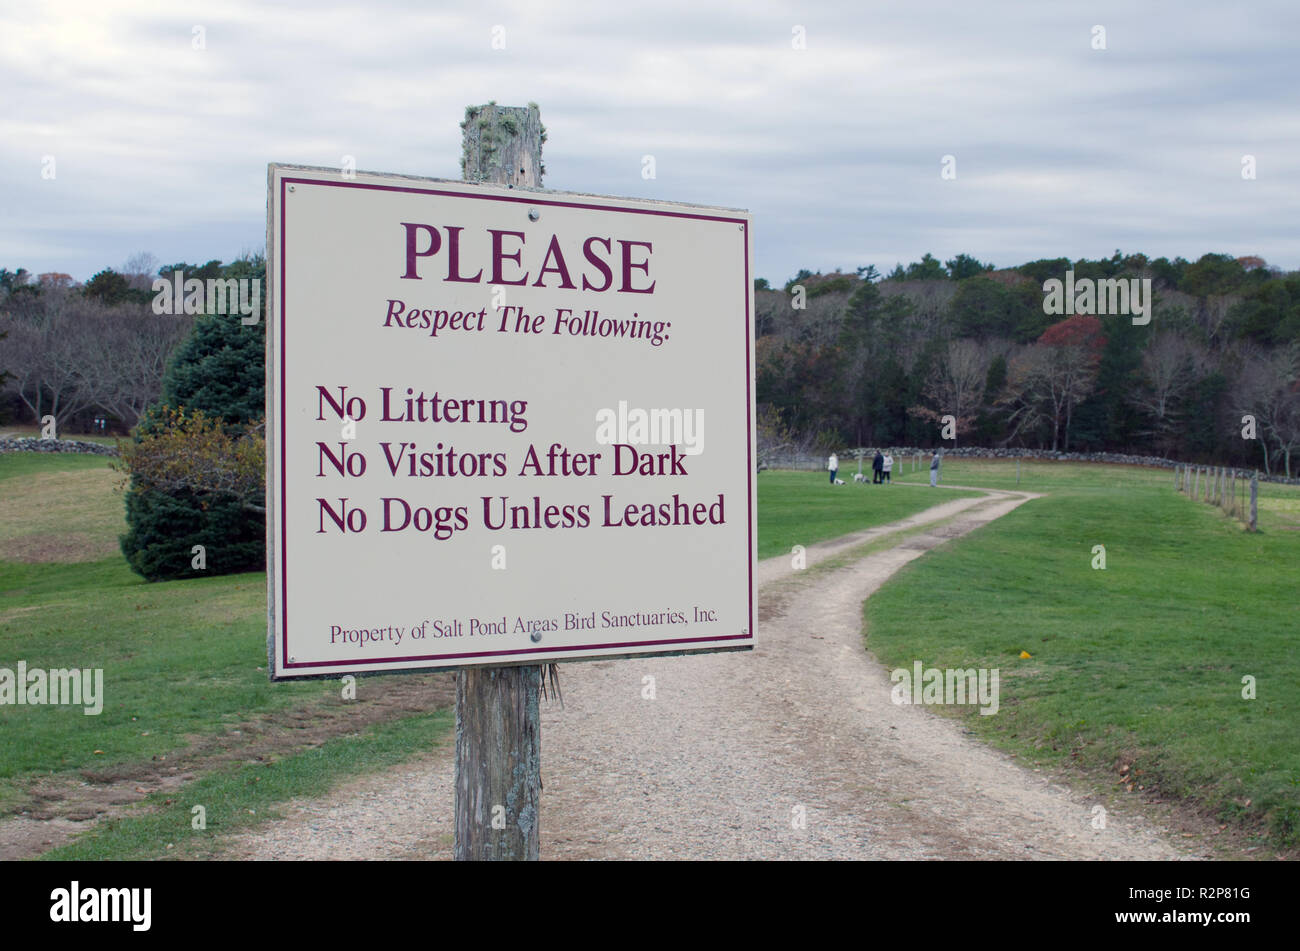 Sign stating Please Respect the Following: No Littering, No Visitors After Dark and No Dogs Unless Leashed at Bourne Farm, Falmouth, Cape Cod - Stock Image